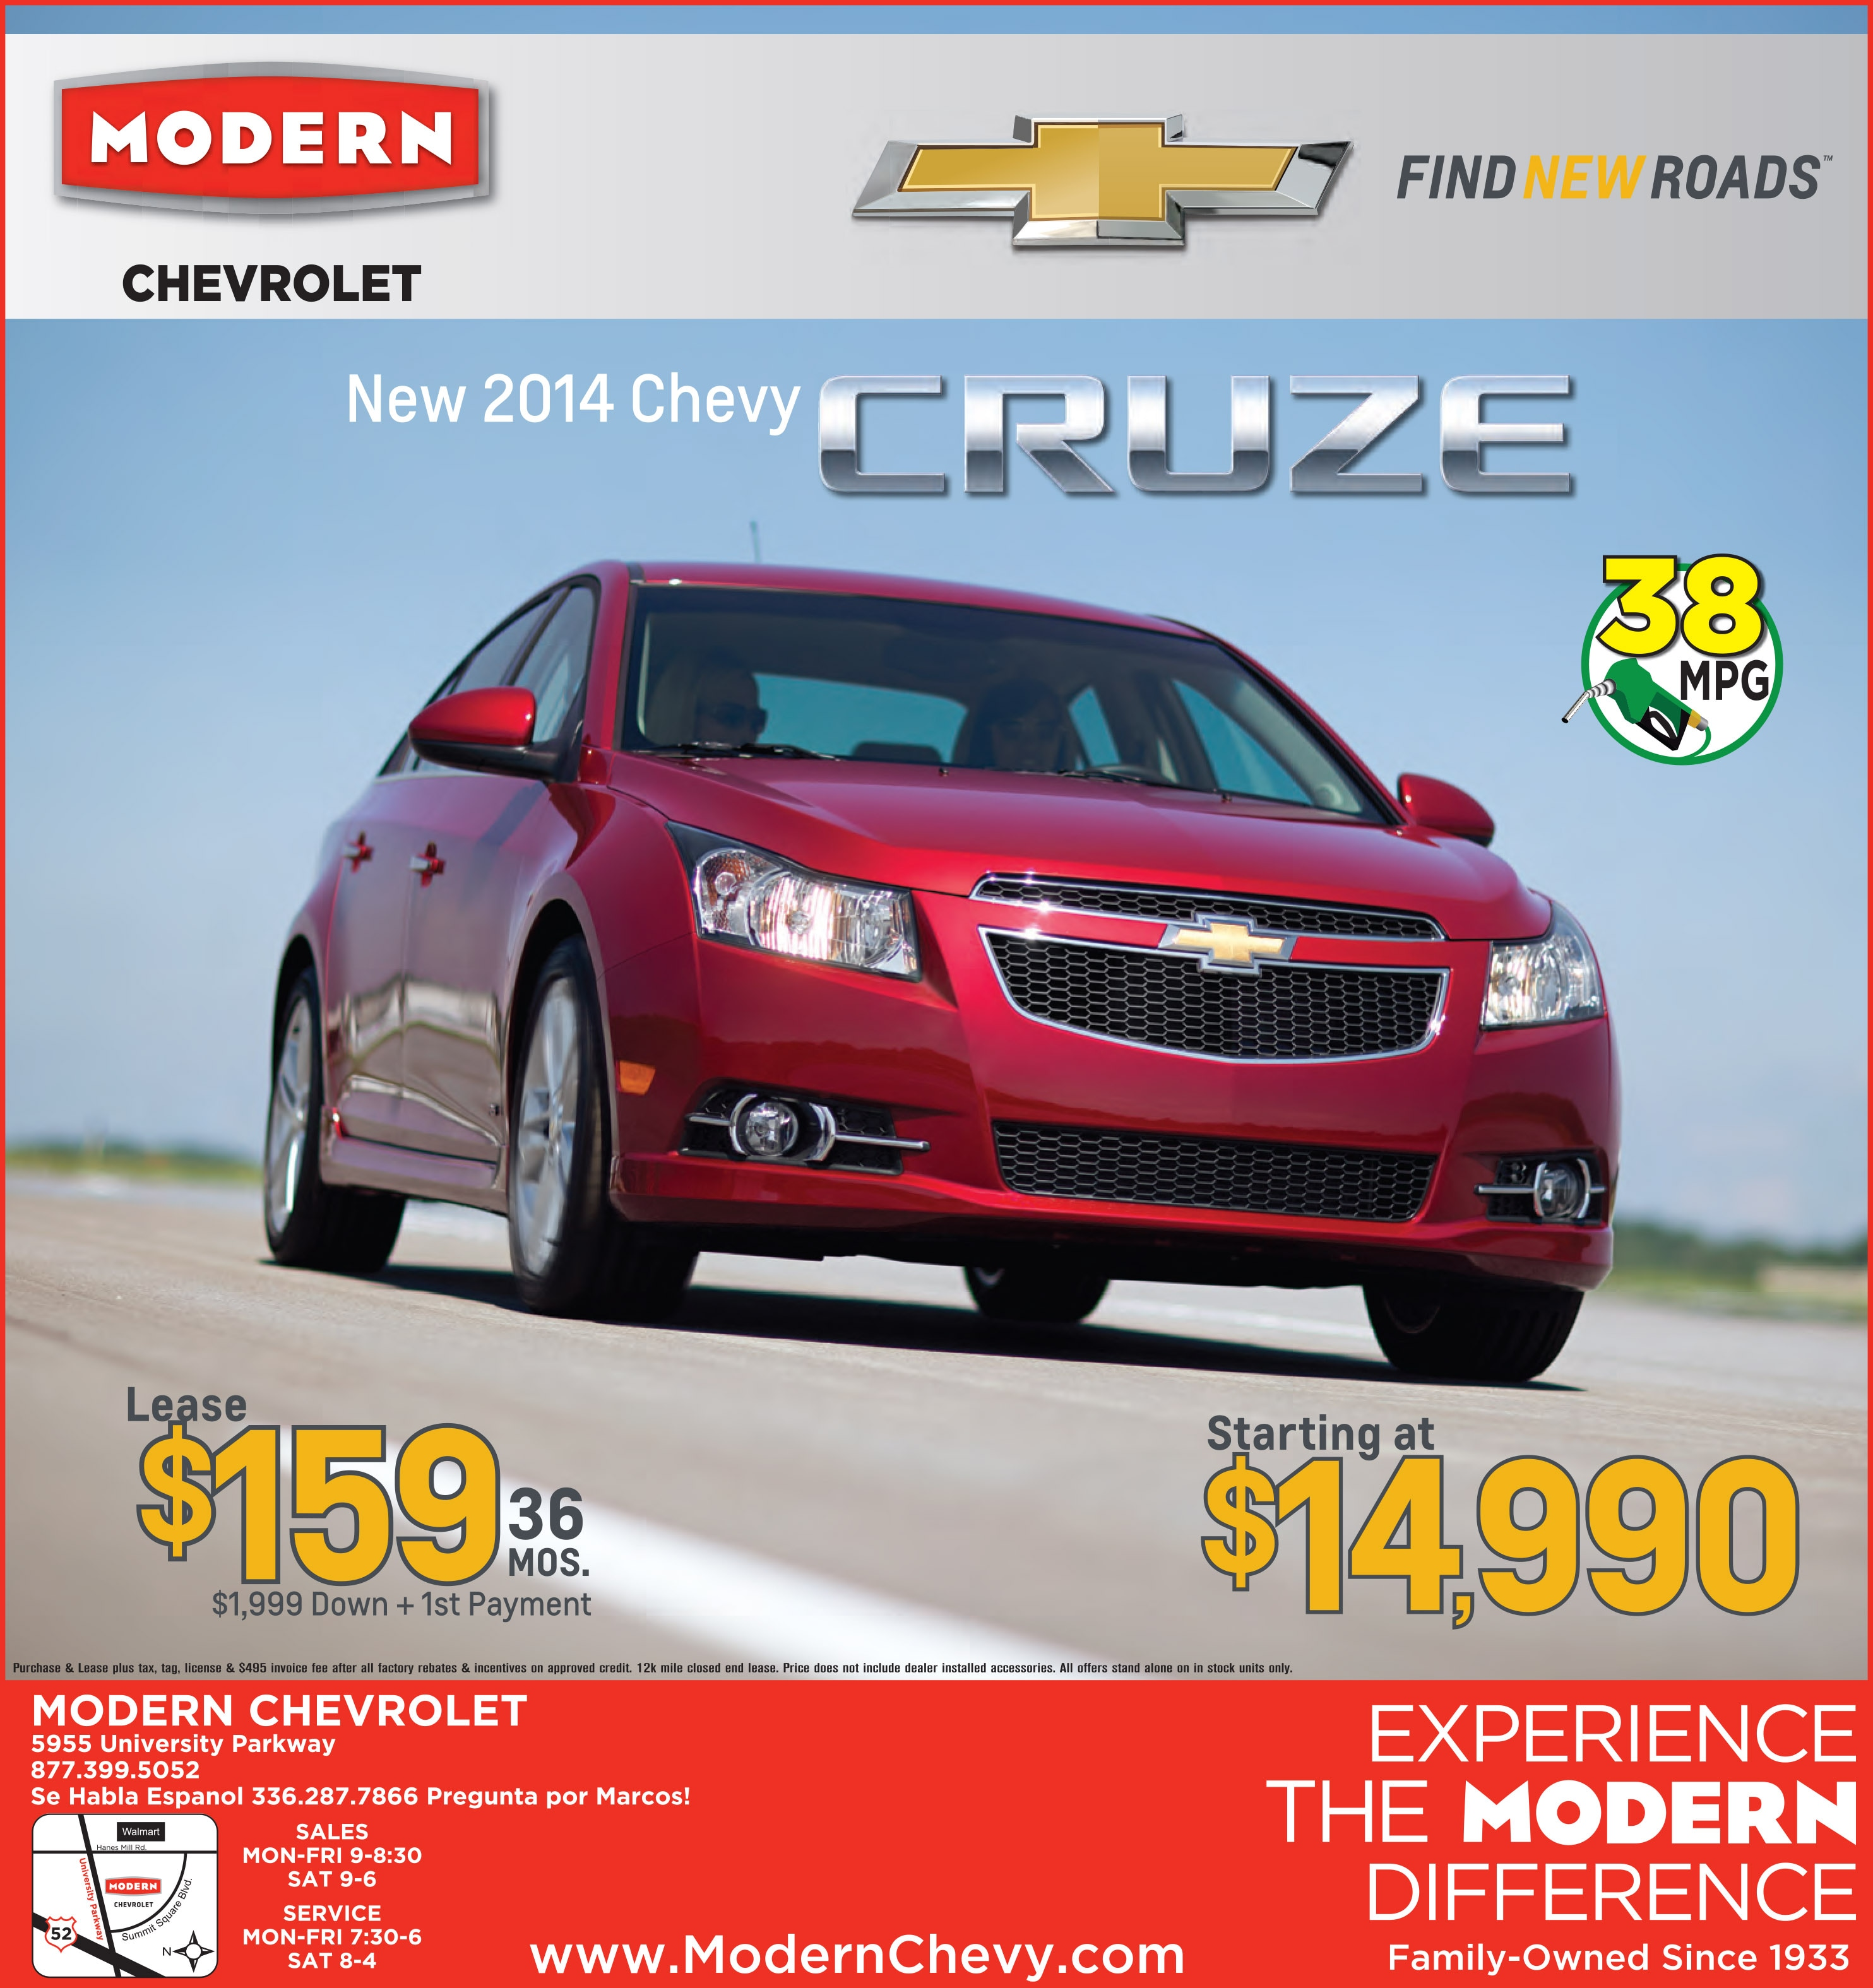 Modern Chevrolet | New Chevrolet dealership in Winston Salem, NC 27105